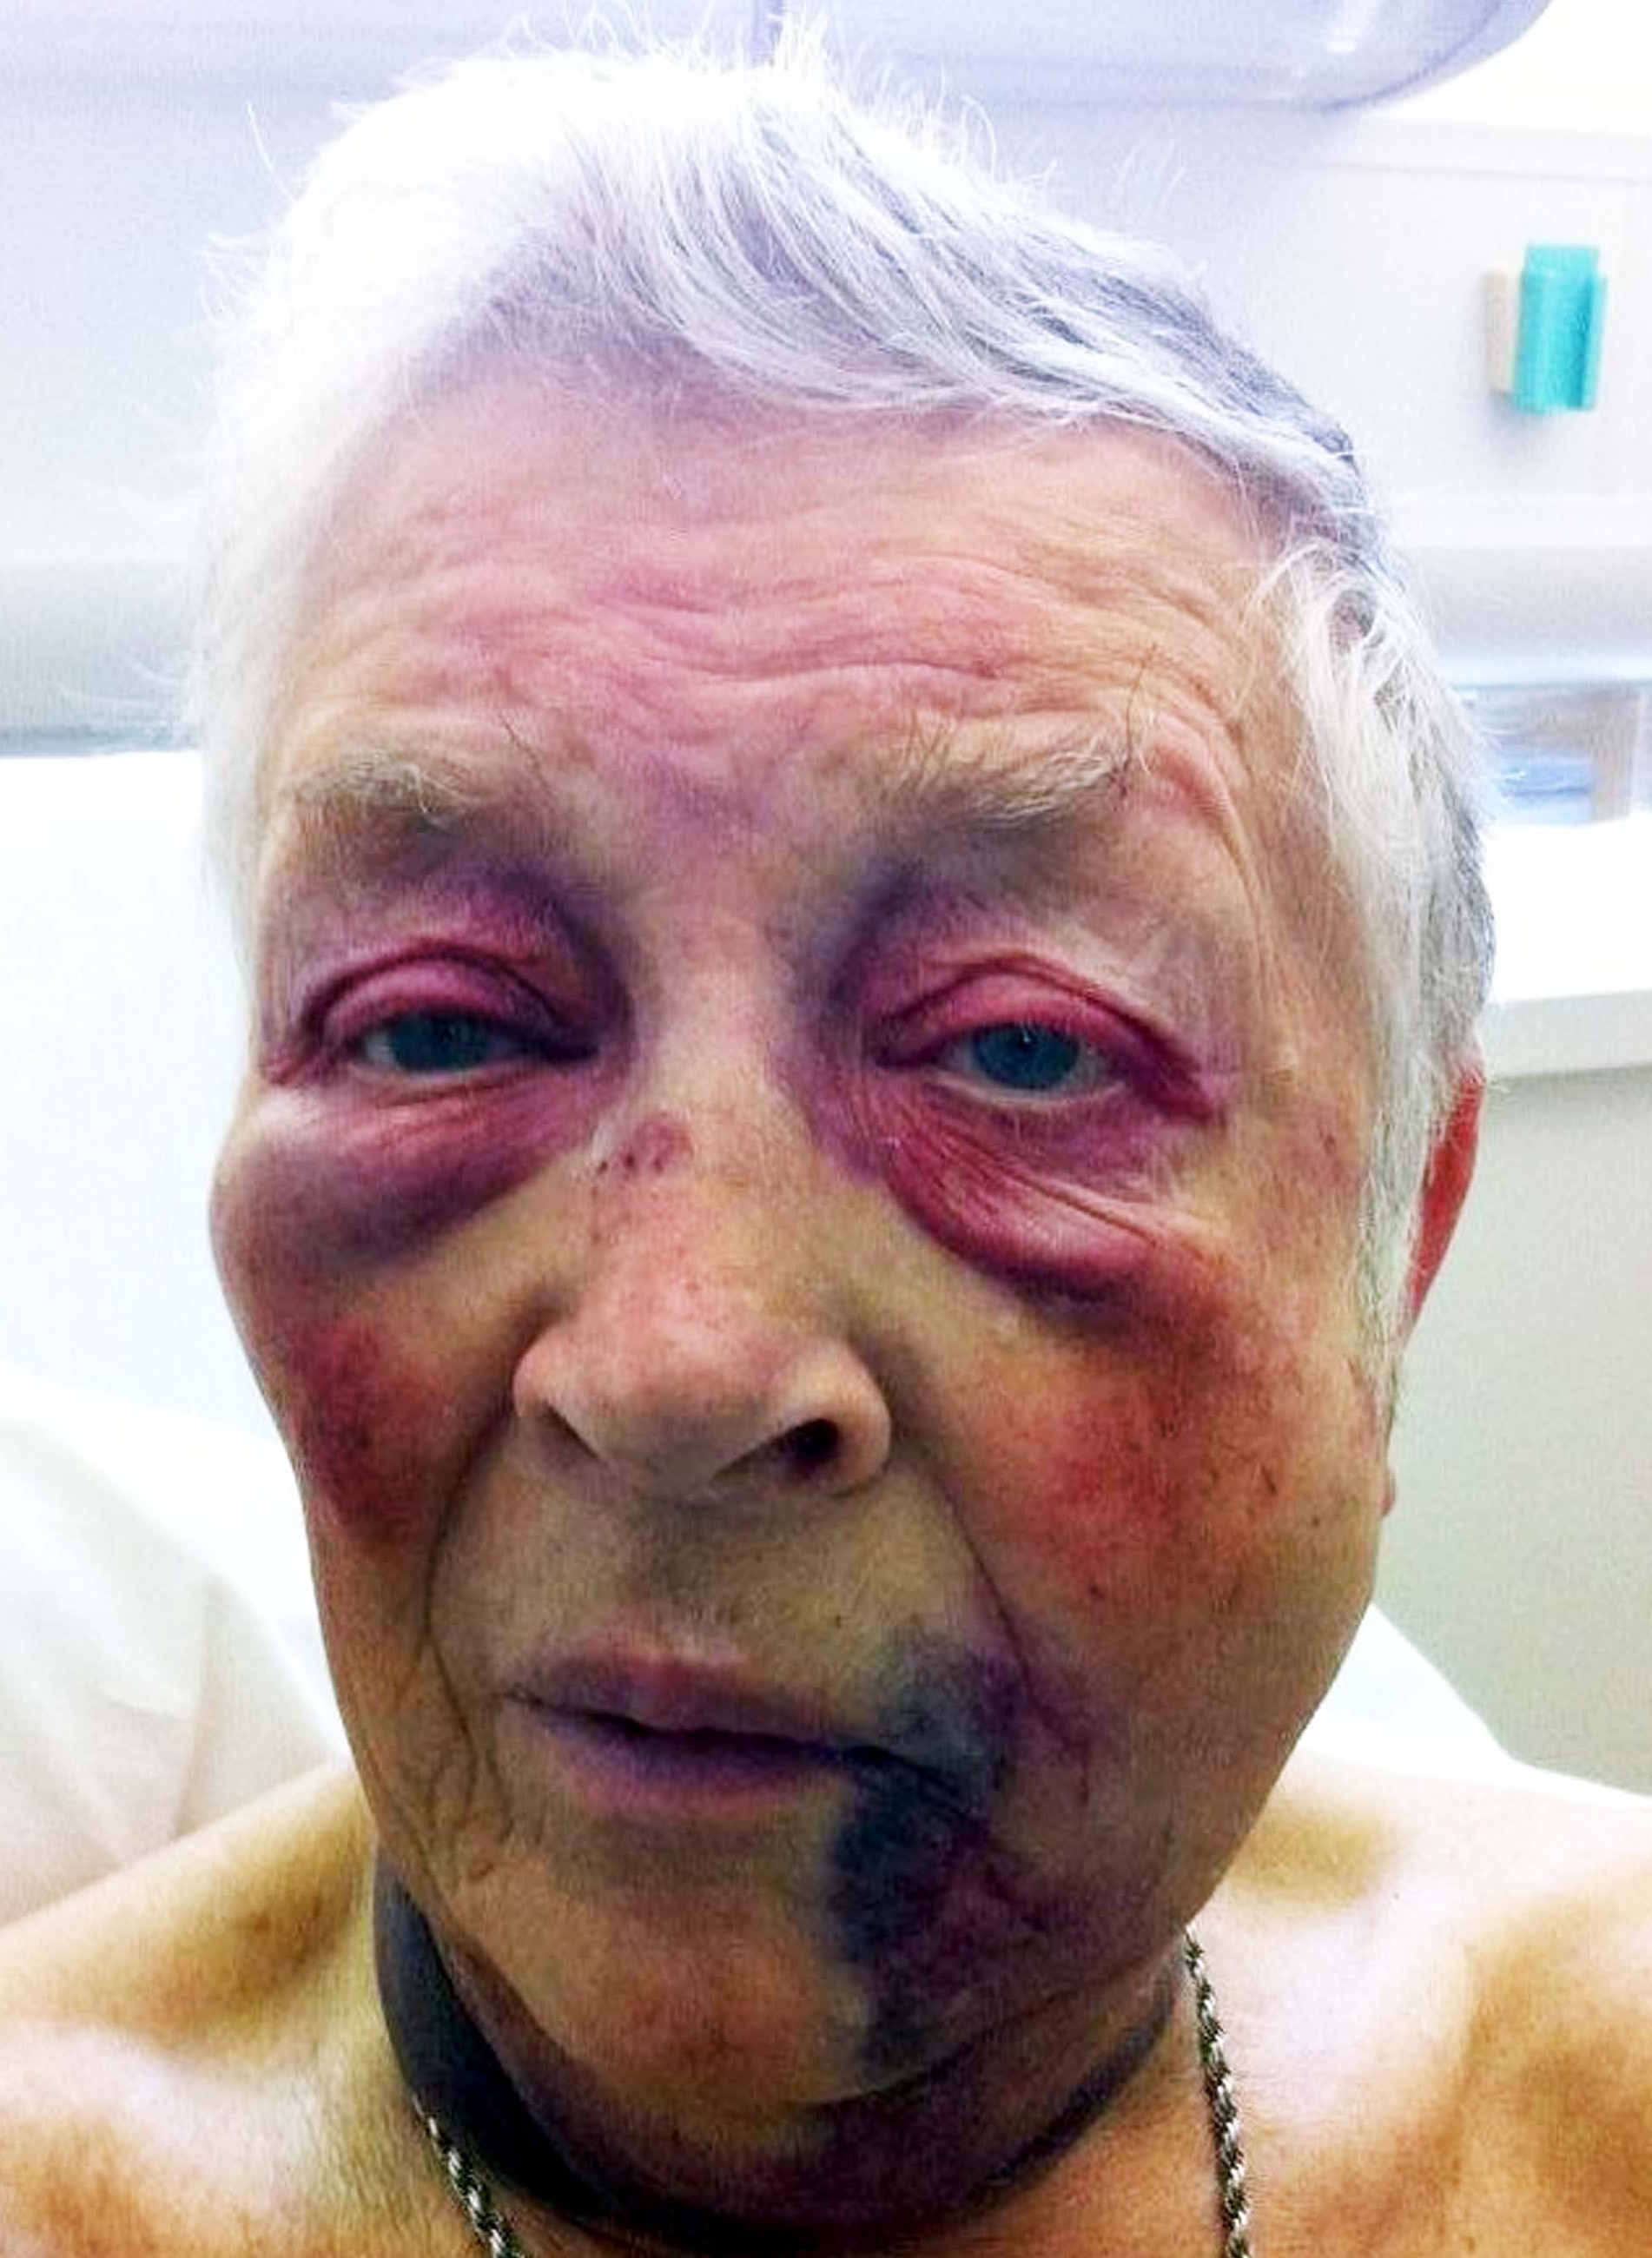 William Hopkins suffered a fractured jaw after being beaten and robbed outside his home in Birmingham